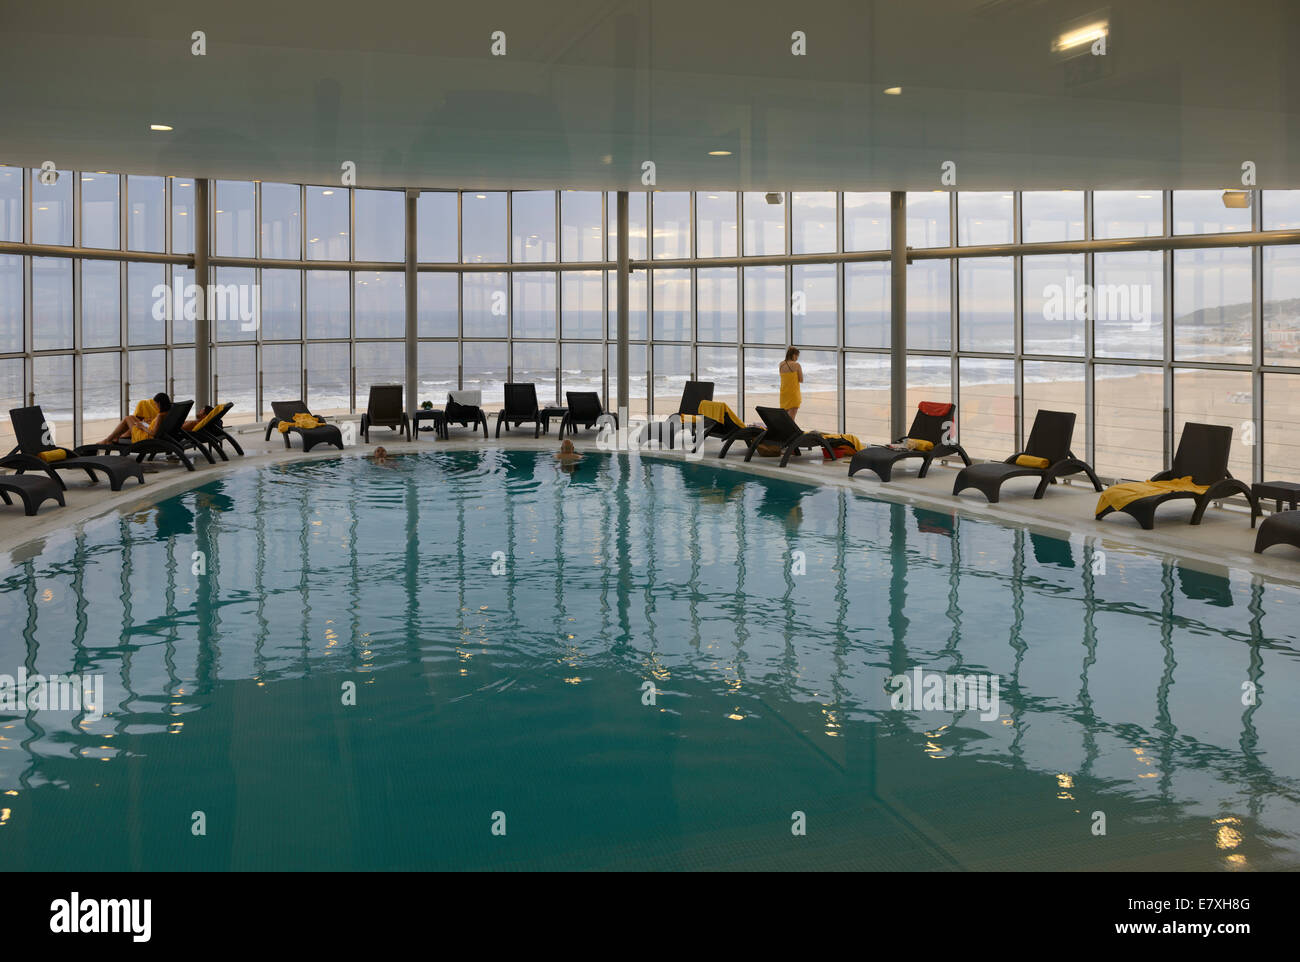 Hotel Indoor Swimming Pool With Large Window With A View To The Beach Stock Photo Royalty Free